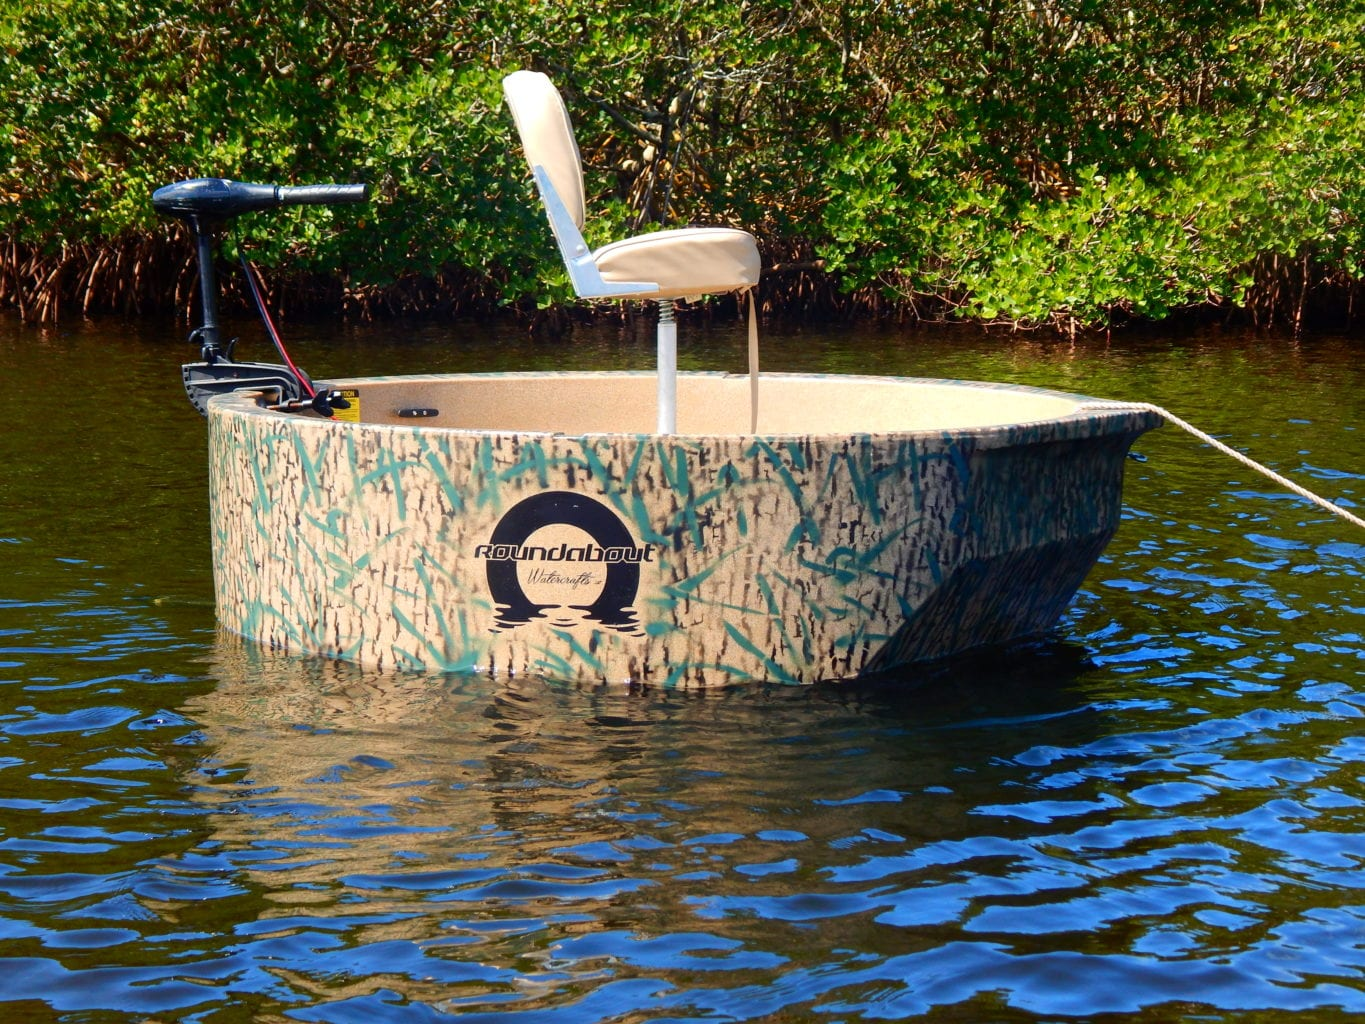 The woodsman hunting boat sitting on the sand along the shoreline